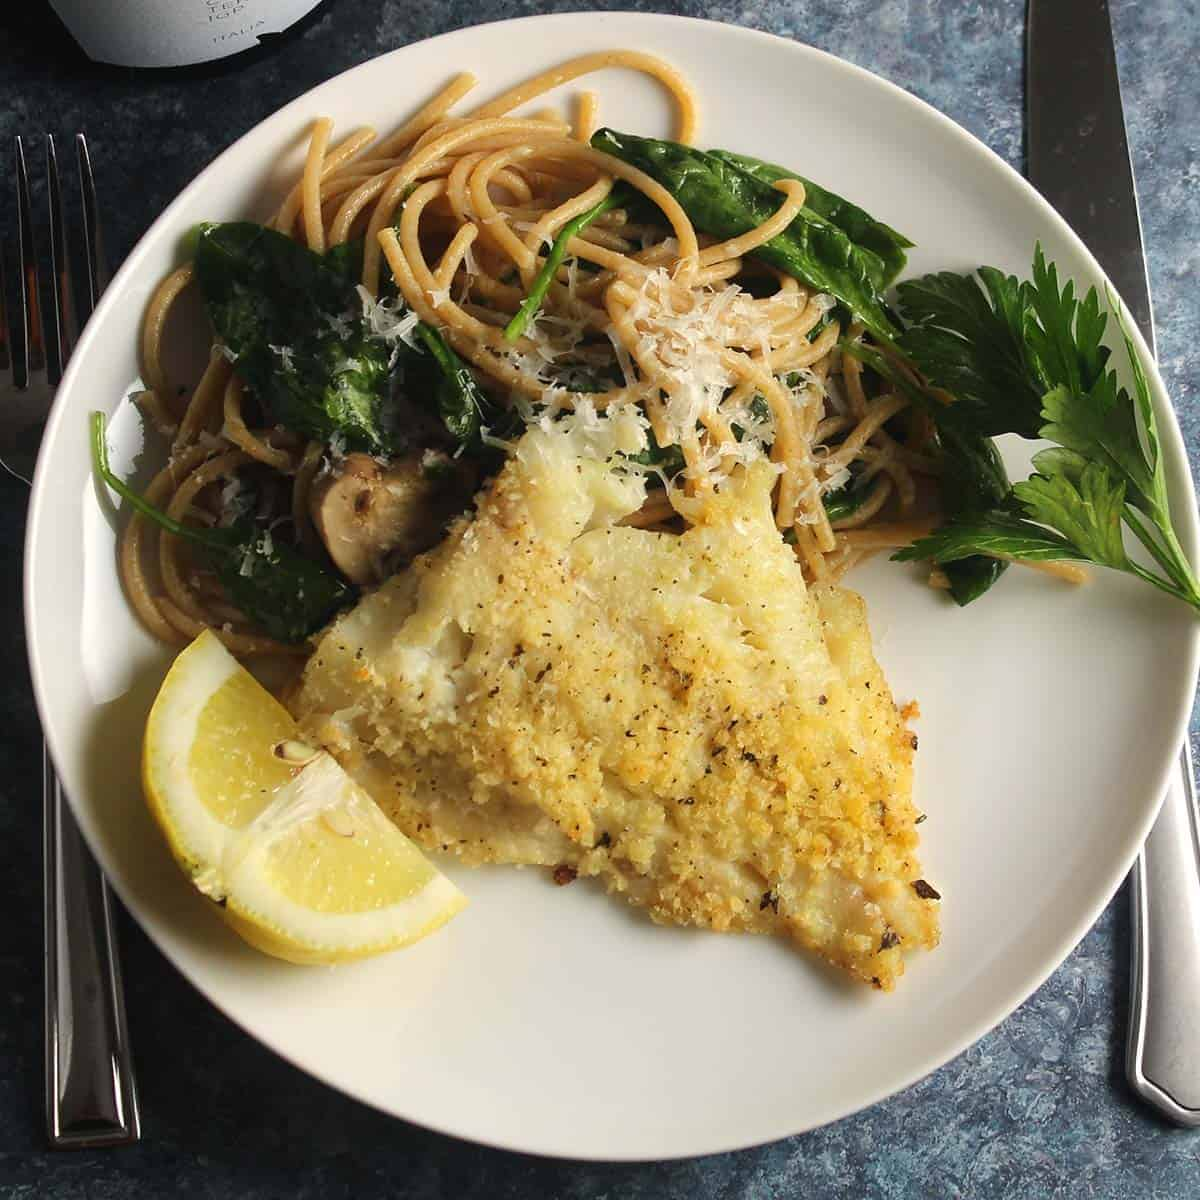 baked haddock on a plate with pasta.